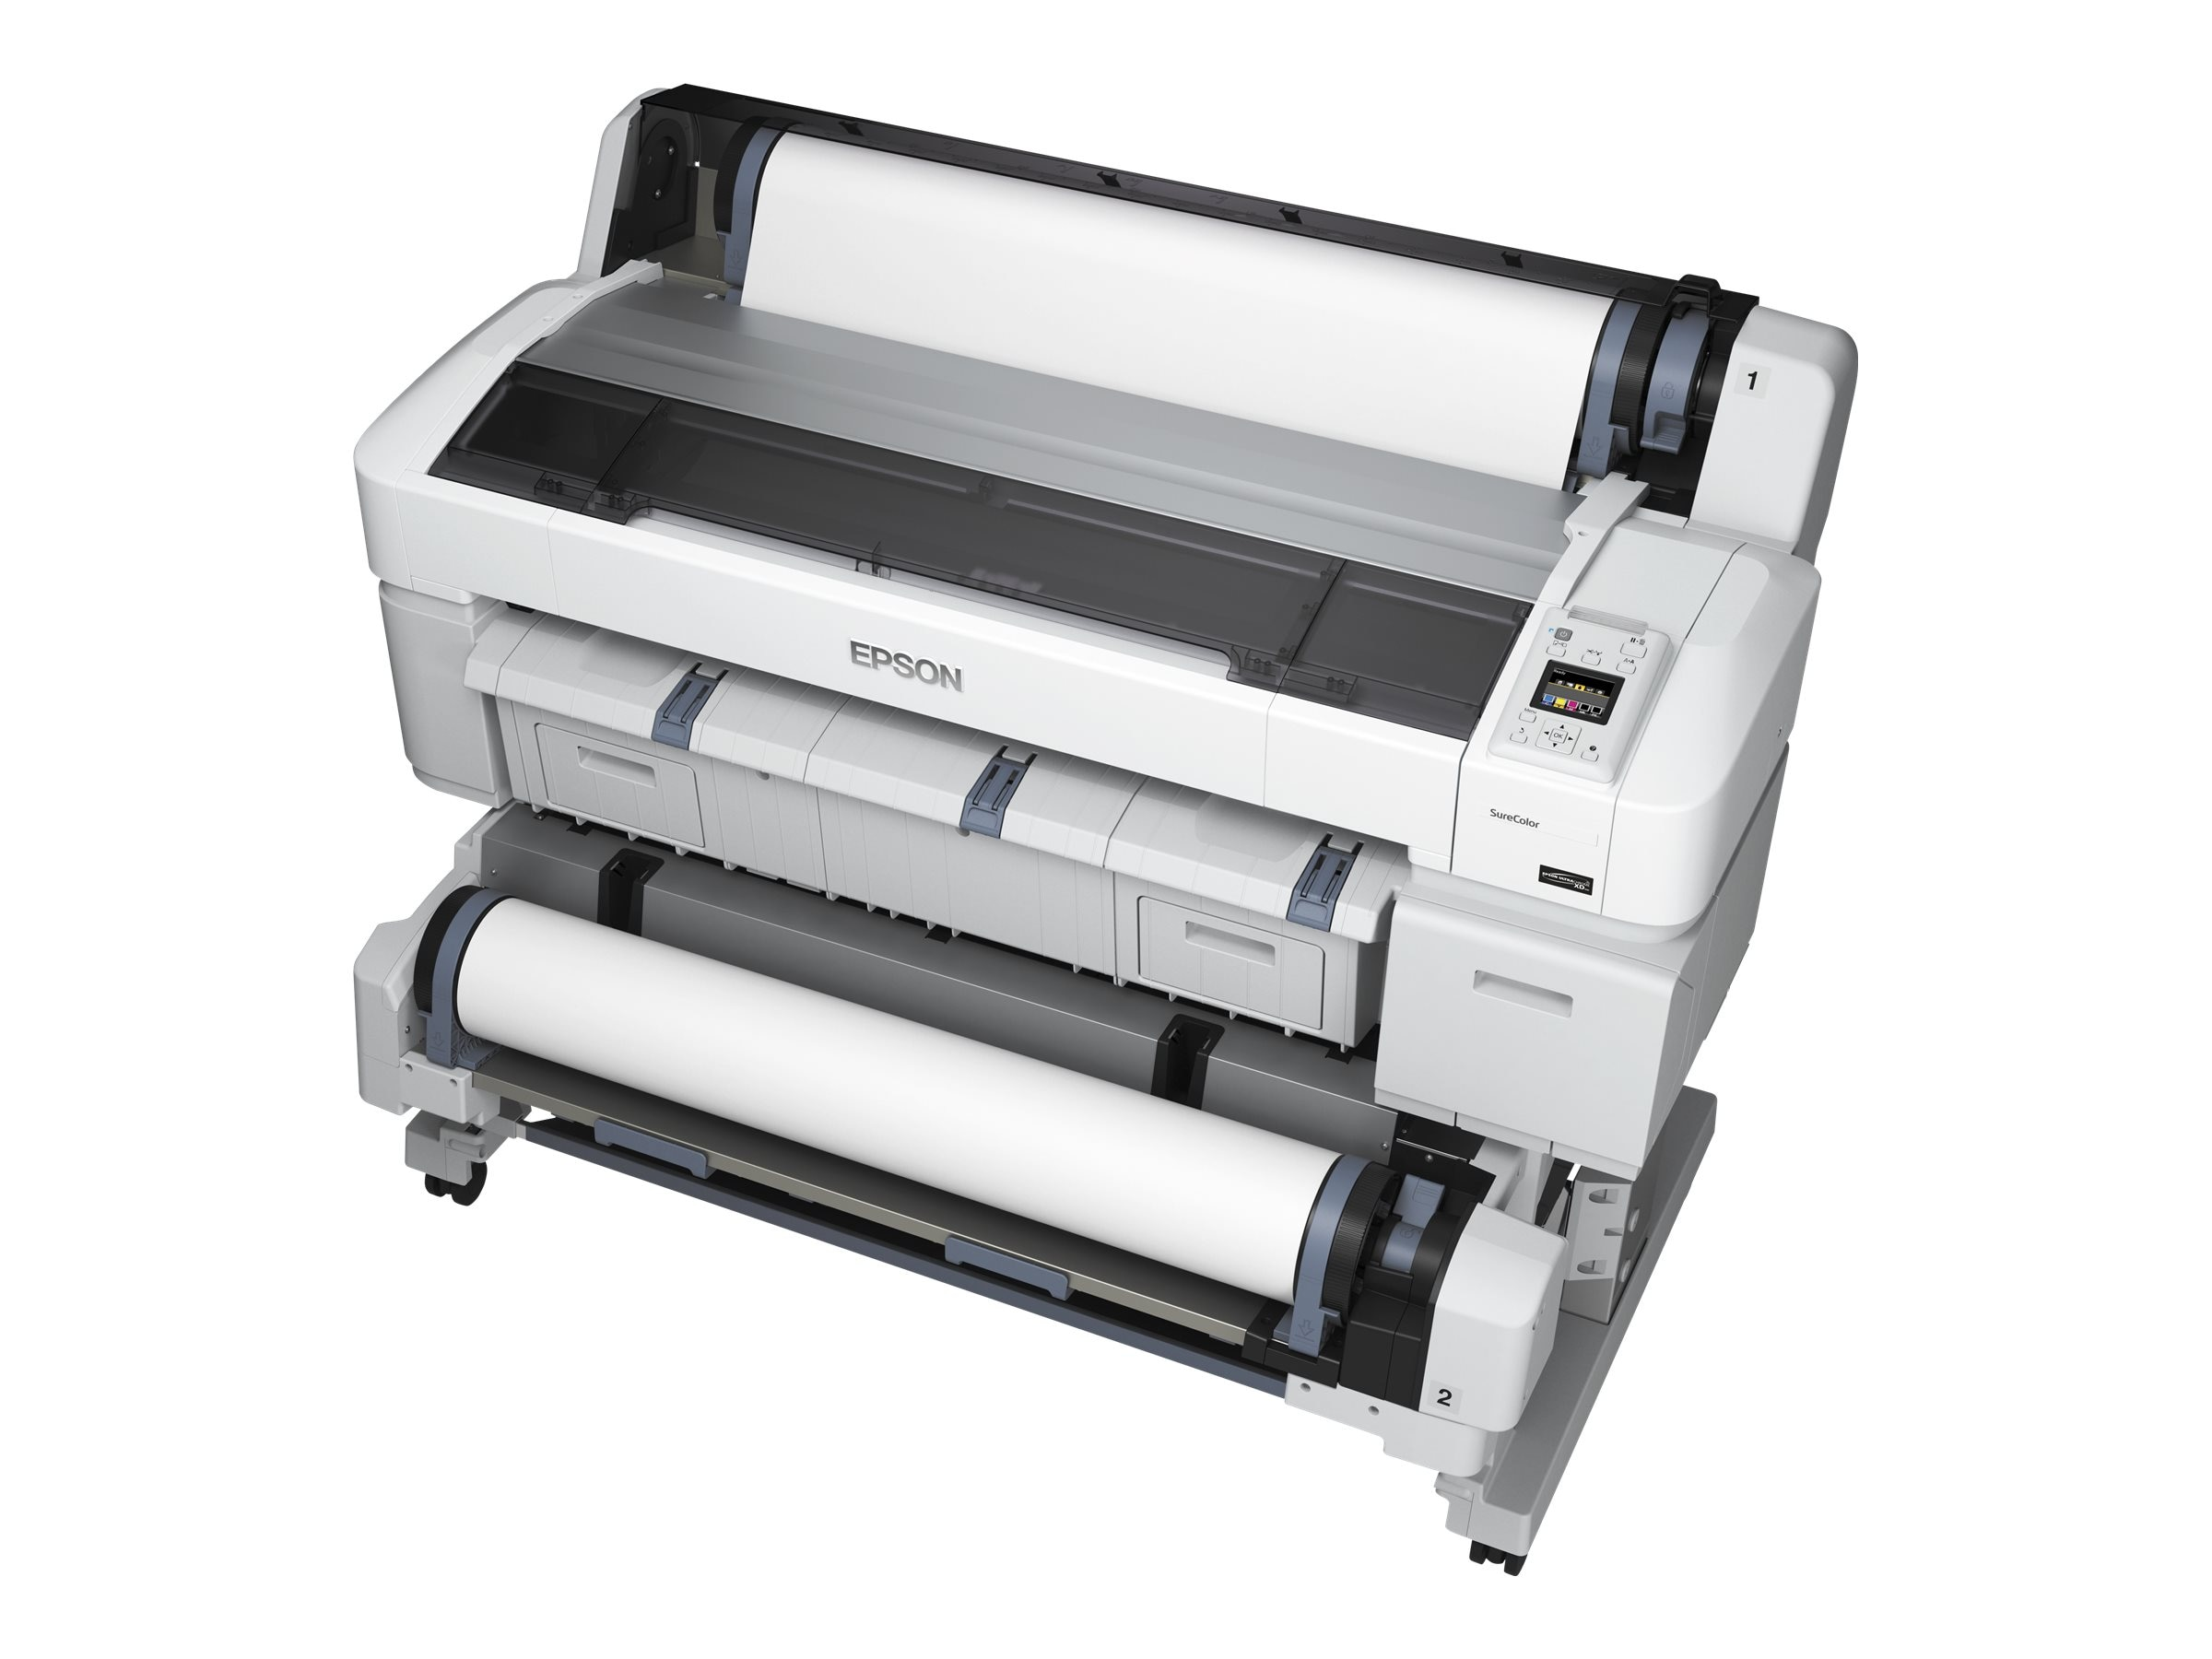 Epson SureColor T5270D Dual Roll Printer - $5995 less instant rebate of $750.00, SCT5270DR